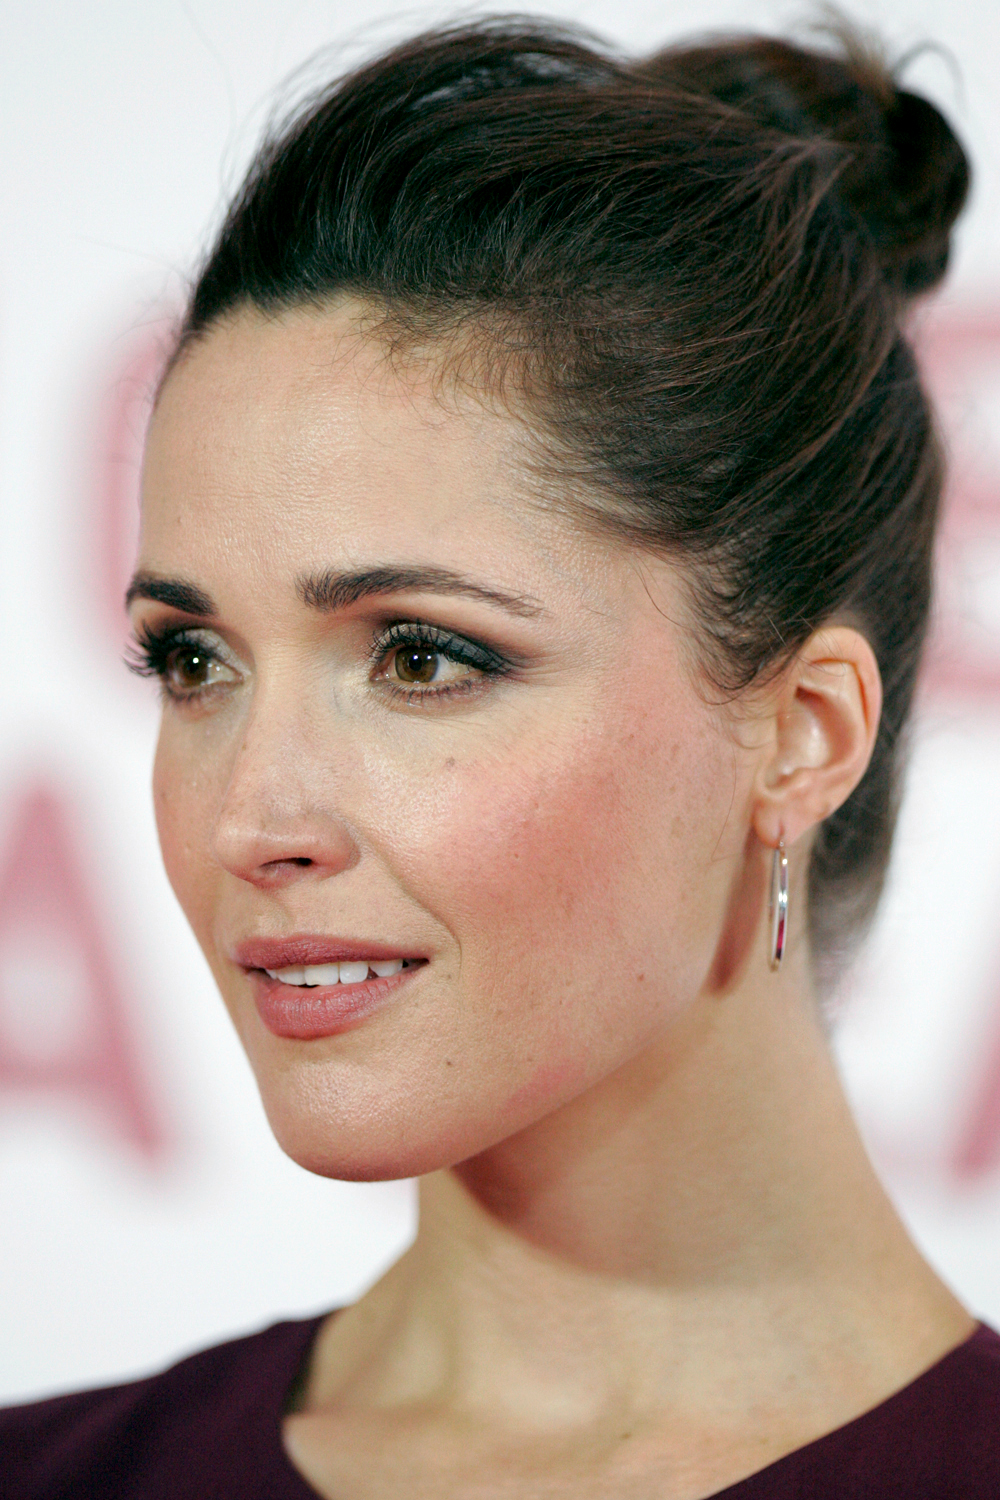 The 40-year old daughter of father (?) and mother(?) Rose Byrne in 2020 photo. Rose Byrne earned a million dollar salary - leaving the net worth at 12.5 million in 2020